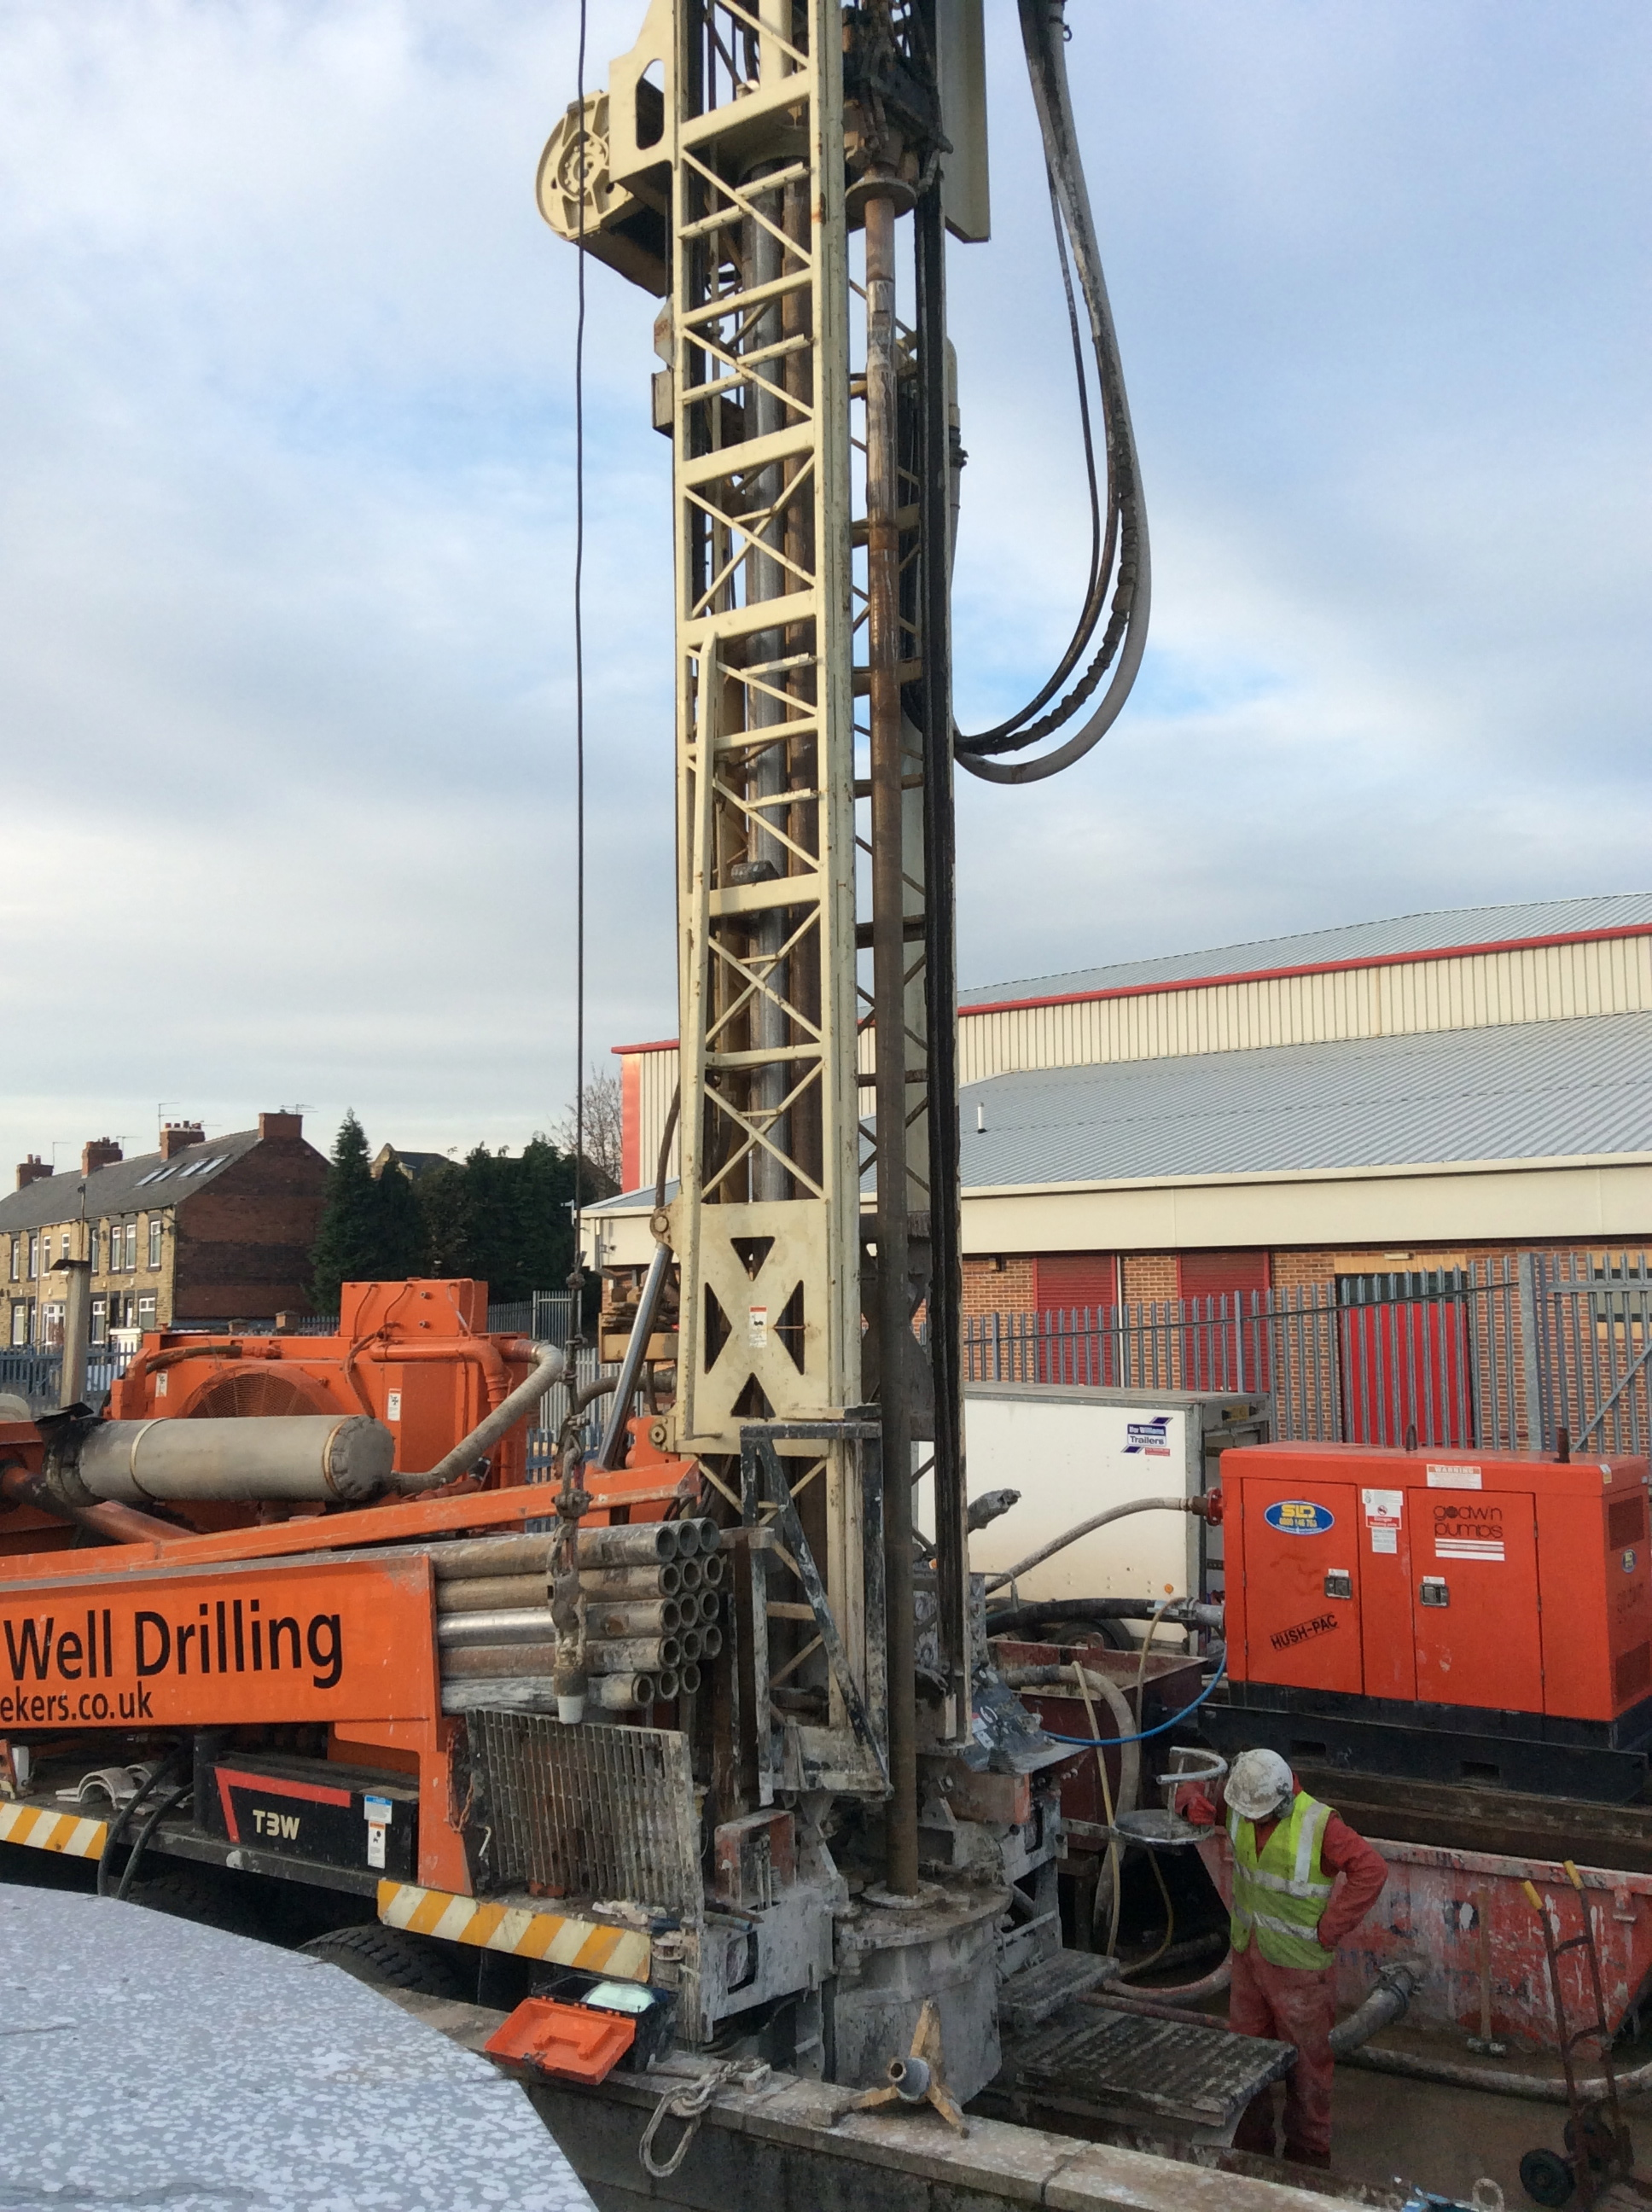 Post it note as a collector while drilling - Water Well Drilling Water Borehole Drilling Barnsley Football Club Uk